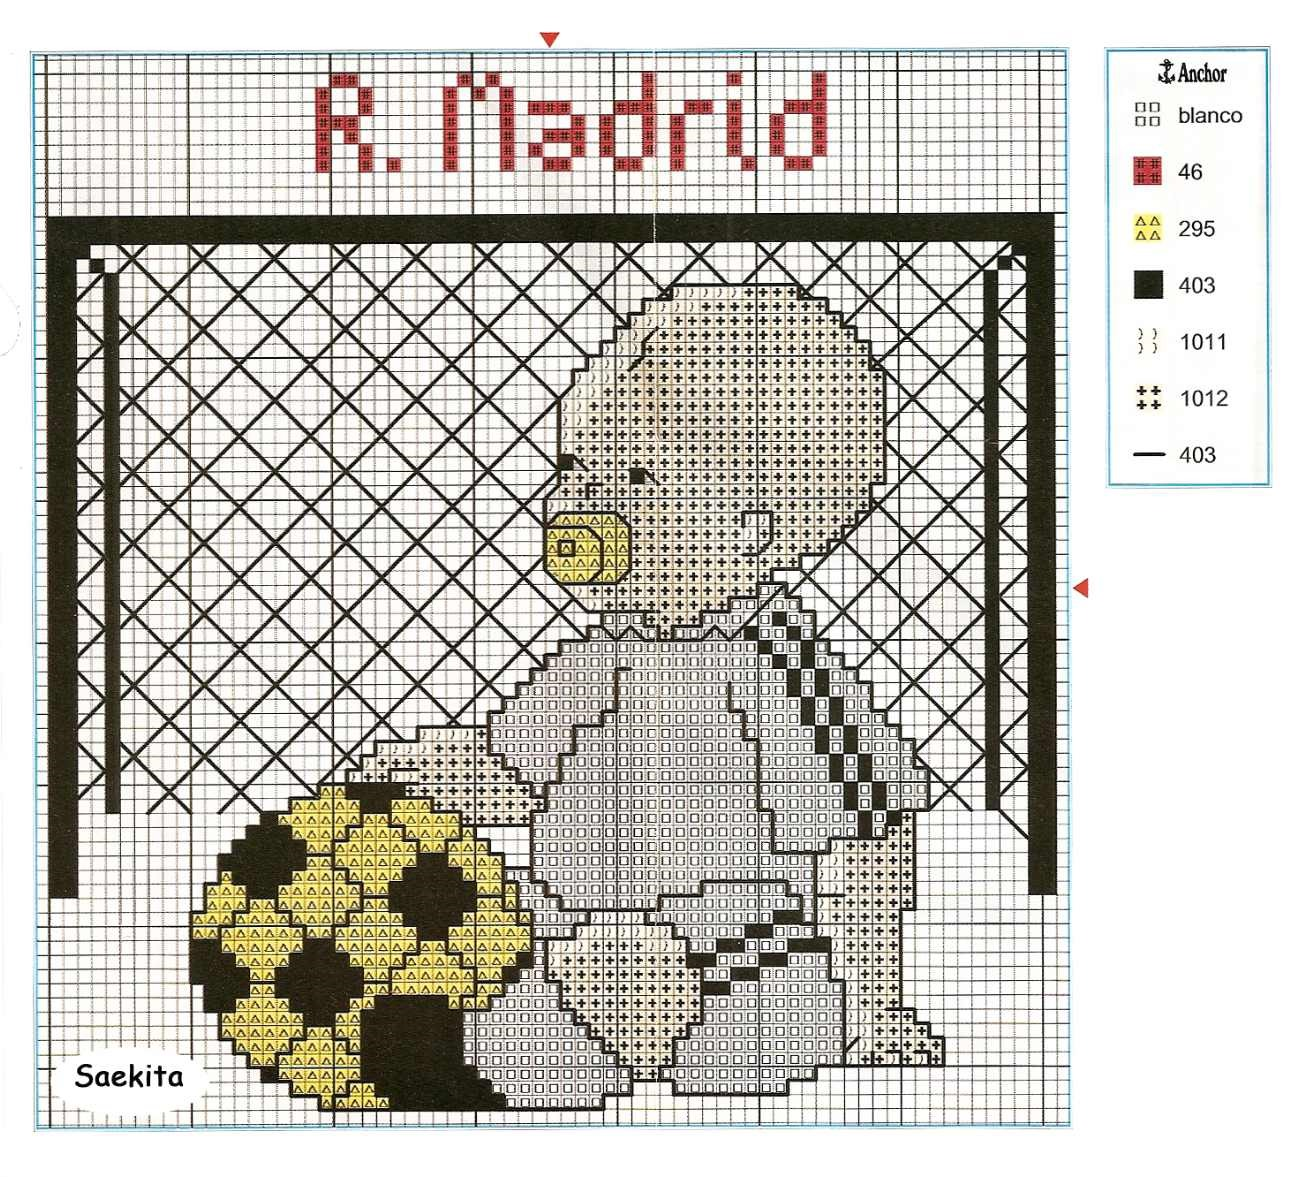 [qqR+Madrid%5B2%5D]